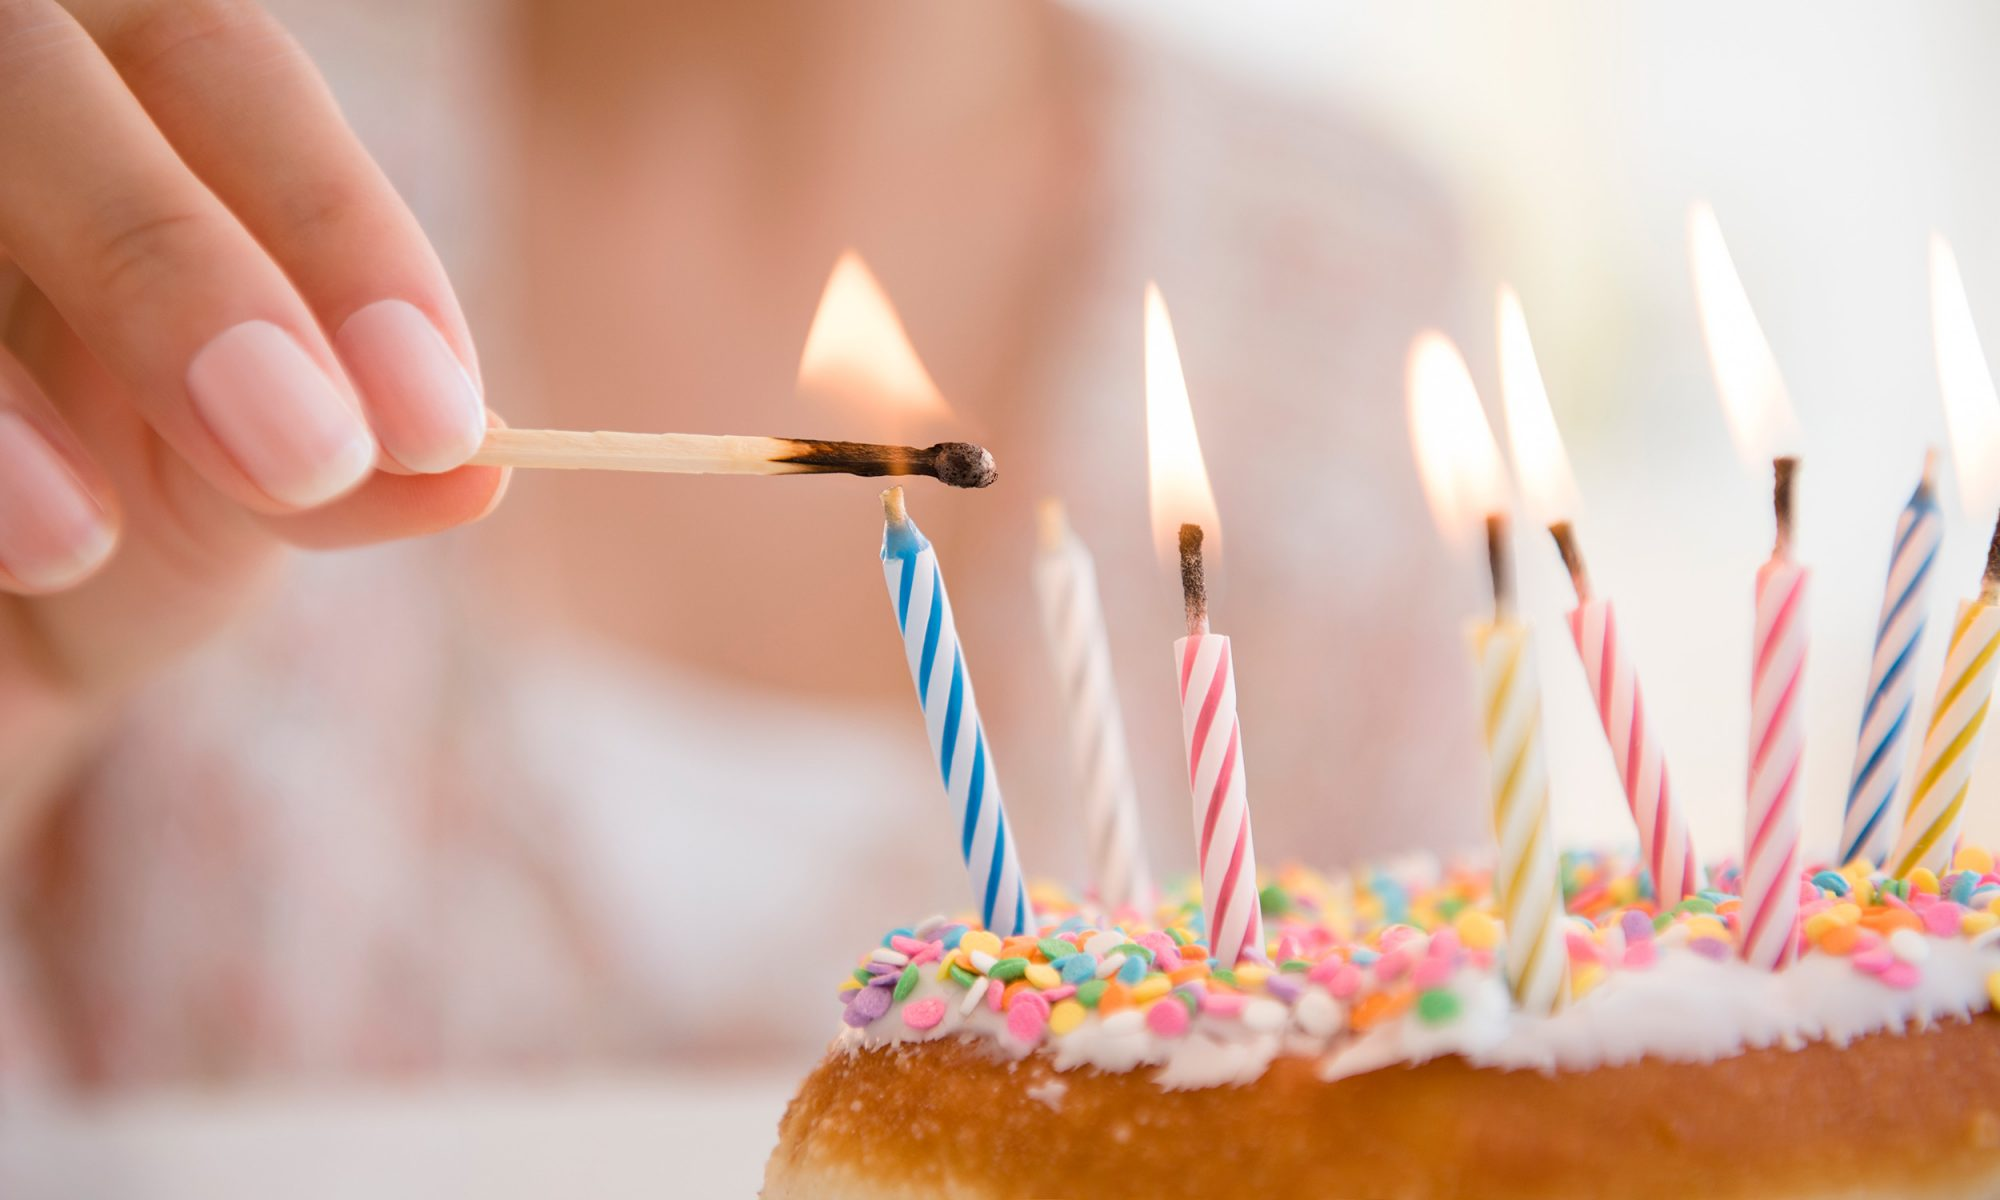 EC: 8 Reasons Why Breakfast on Your Birthday Is the Best